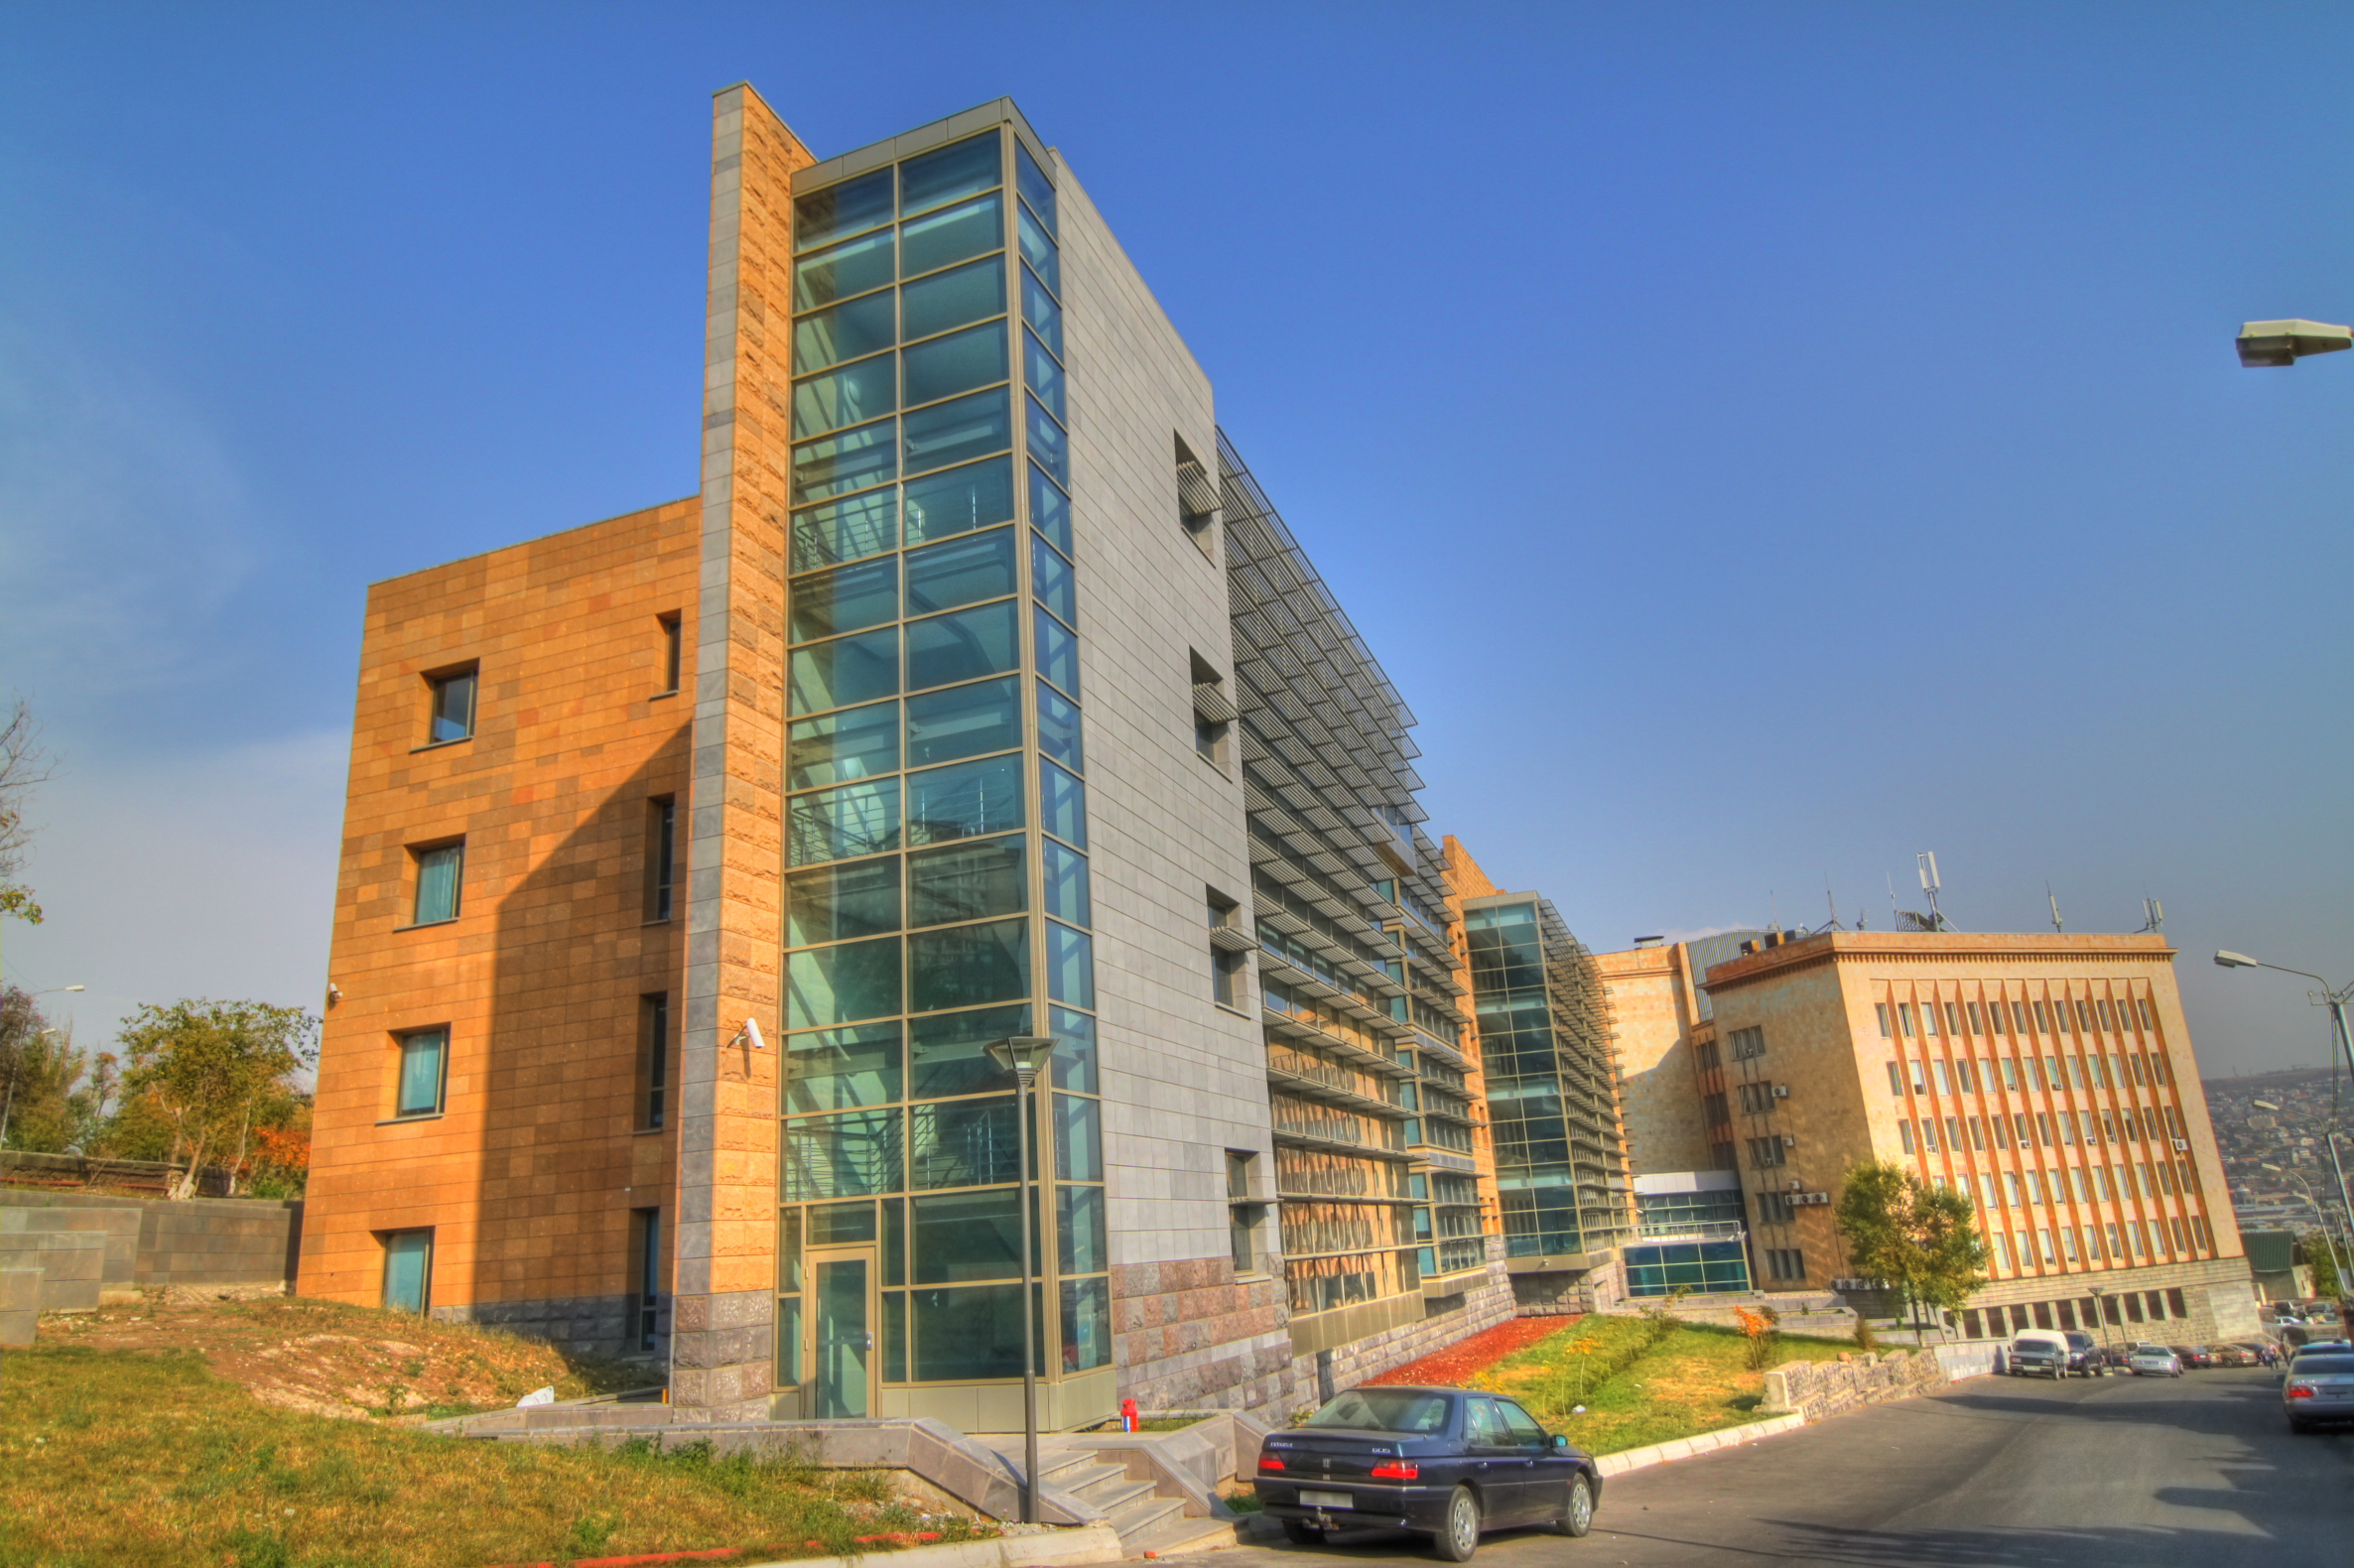 File:American University of Armenia - HDR.JPG - Wikimedia ...